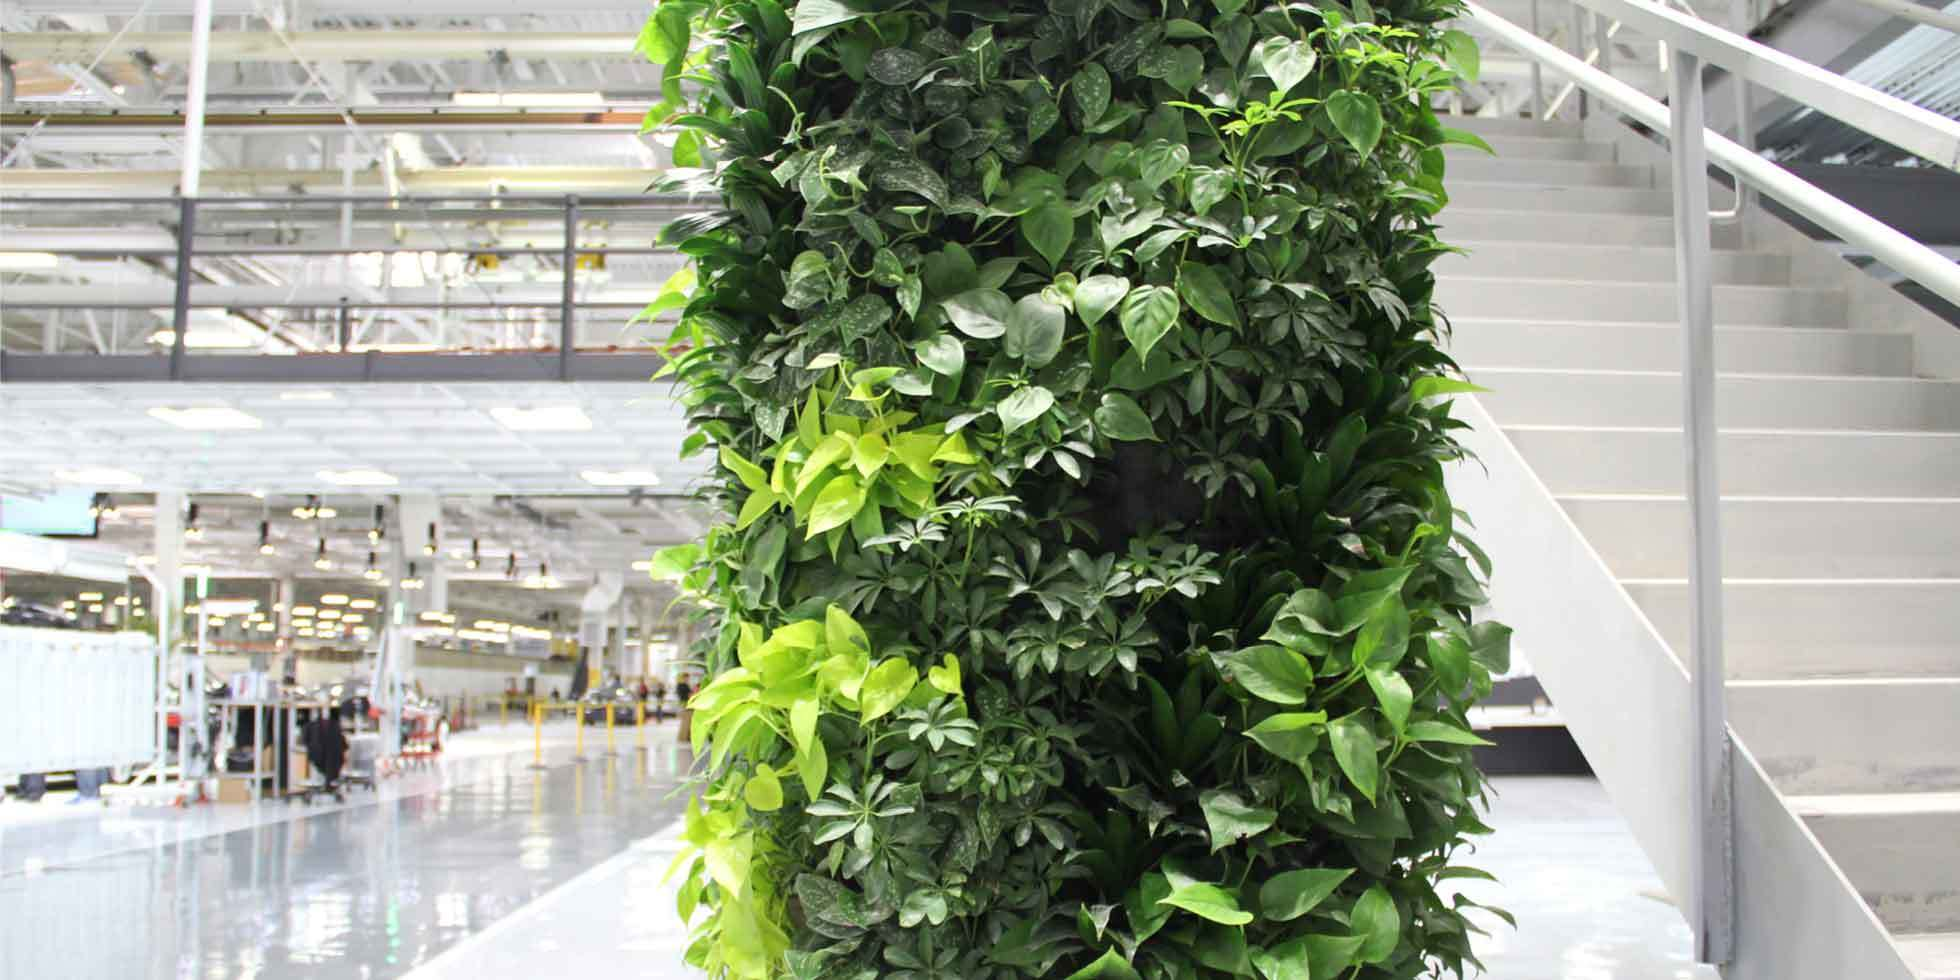 Tesla Factory Living Wall by Habitat Horticulture - View 2